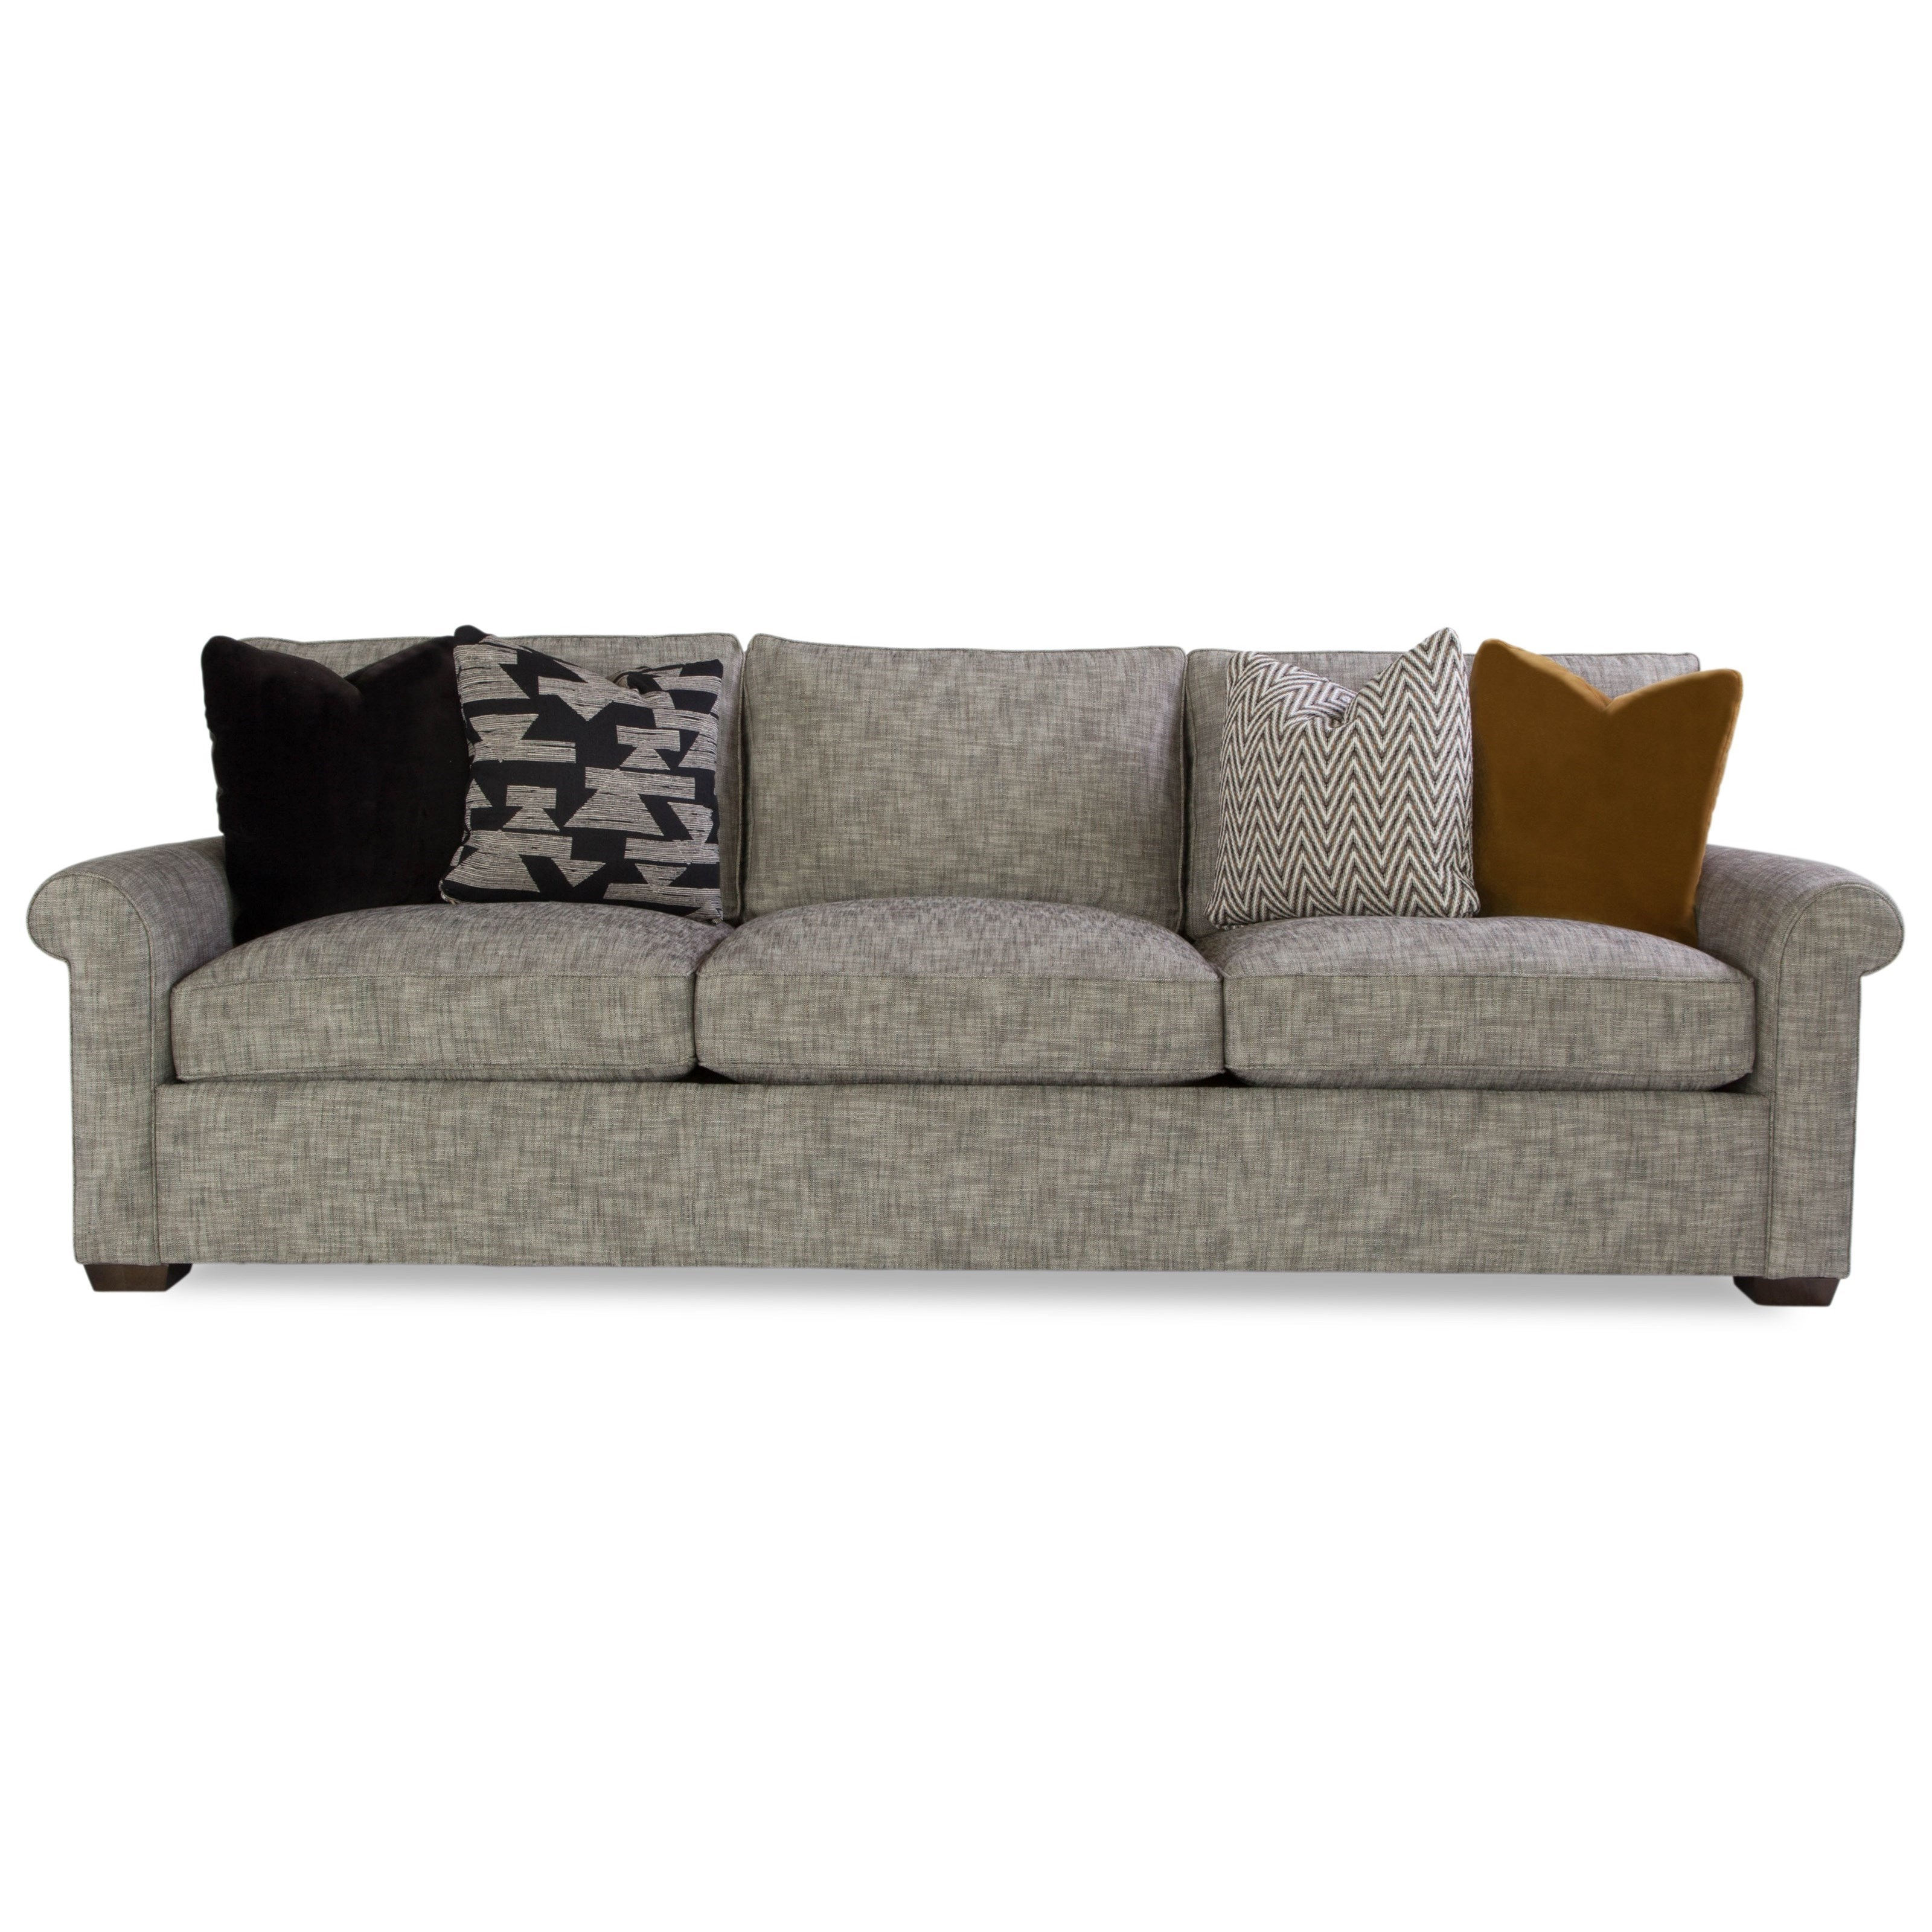 Customizable Sofa w/ Rolled Arms